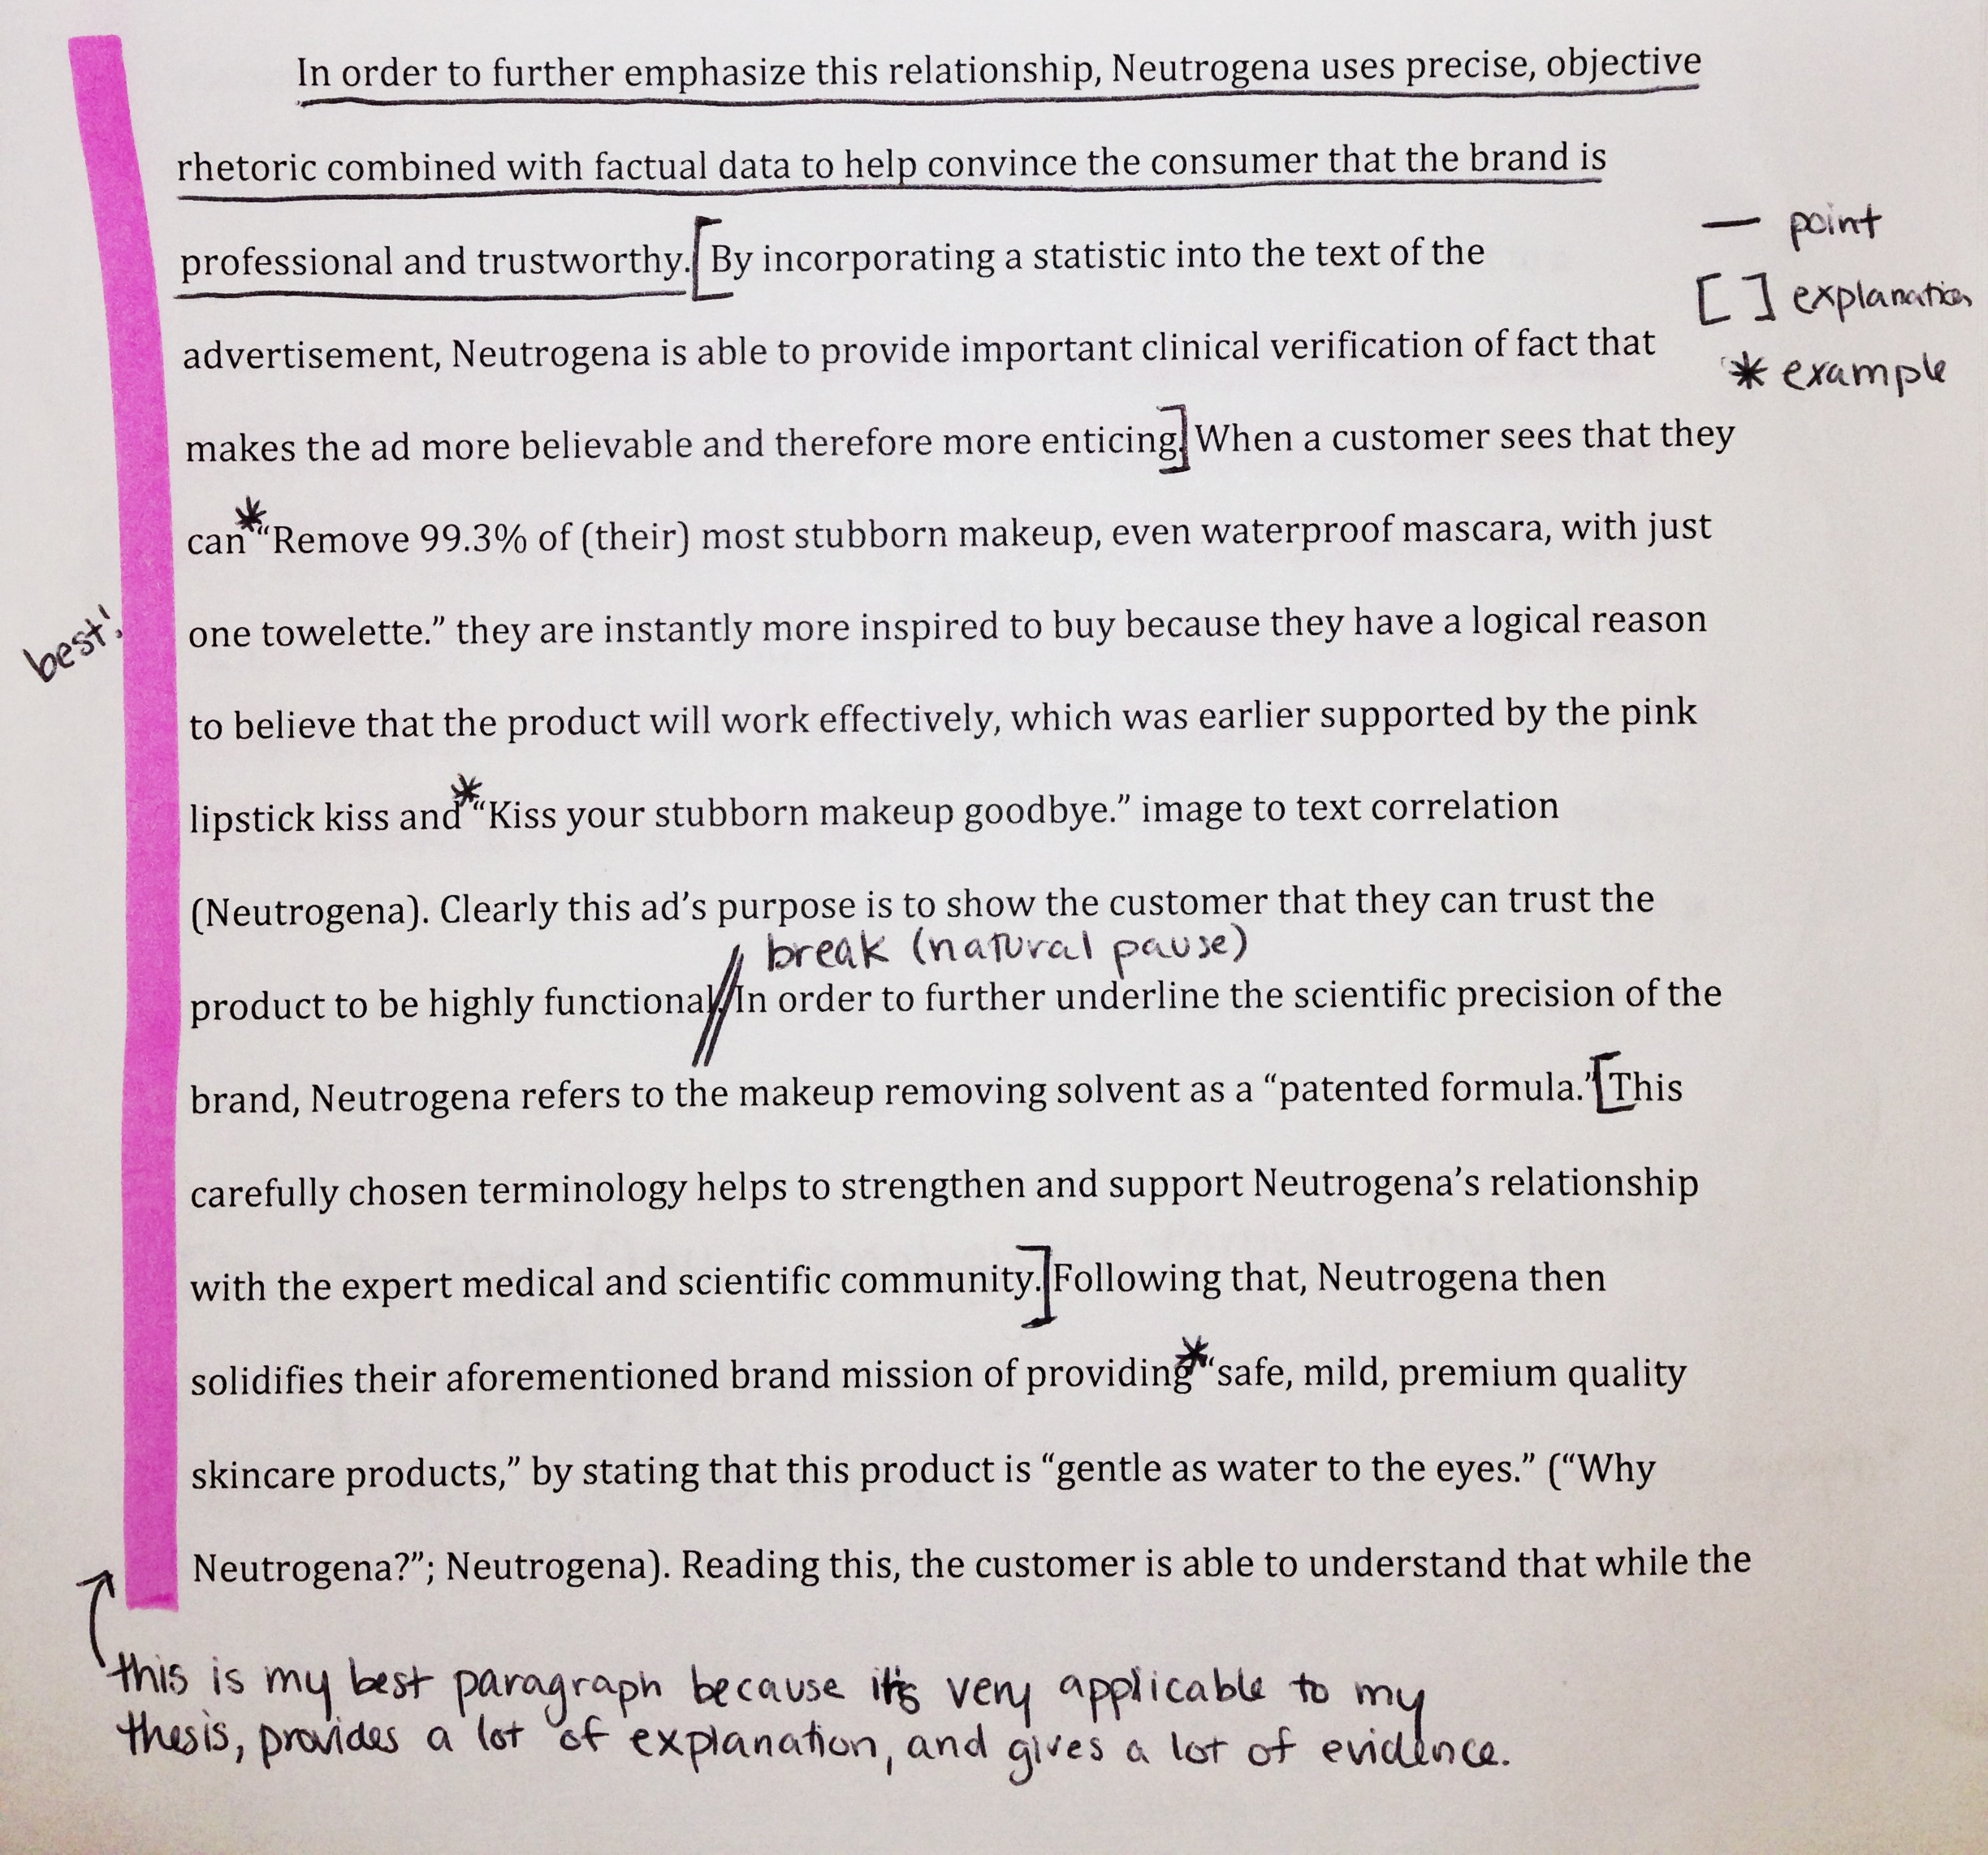 003 Research Paper Conclusion Example For Distinguished Esl Rhetorical Analysis Essay Writing Site Phd Of Paragraph Awesome Pdf Full